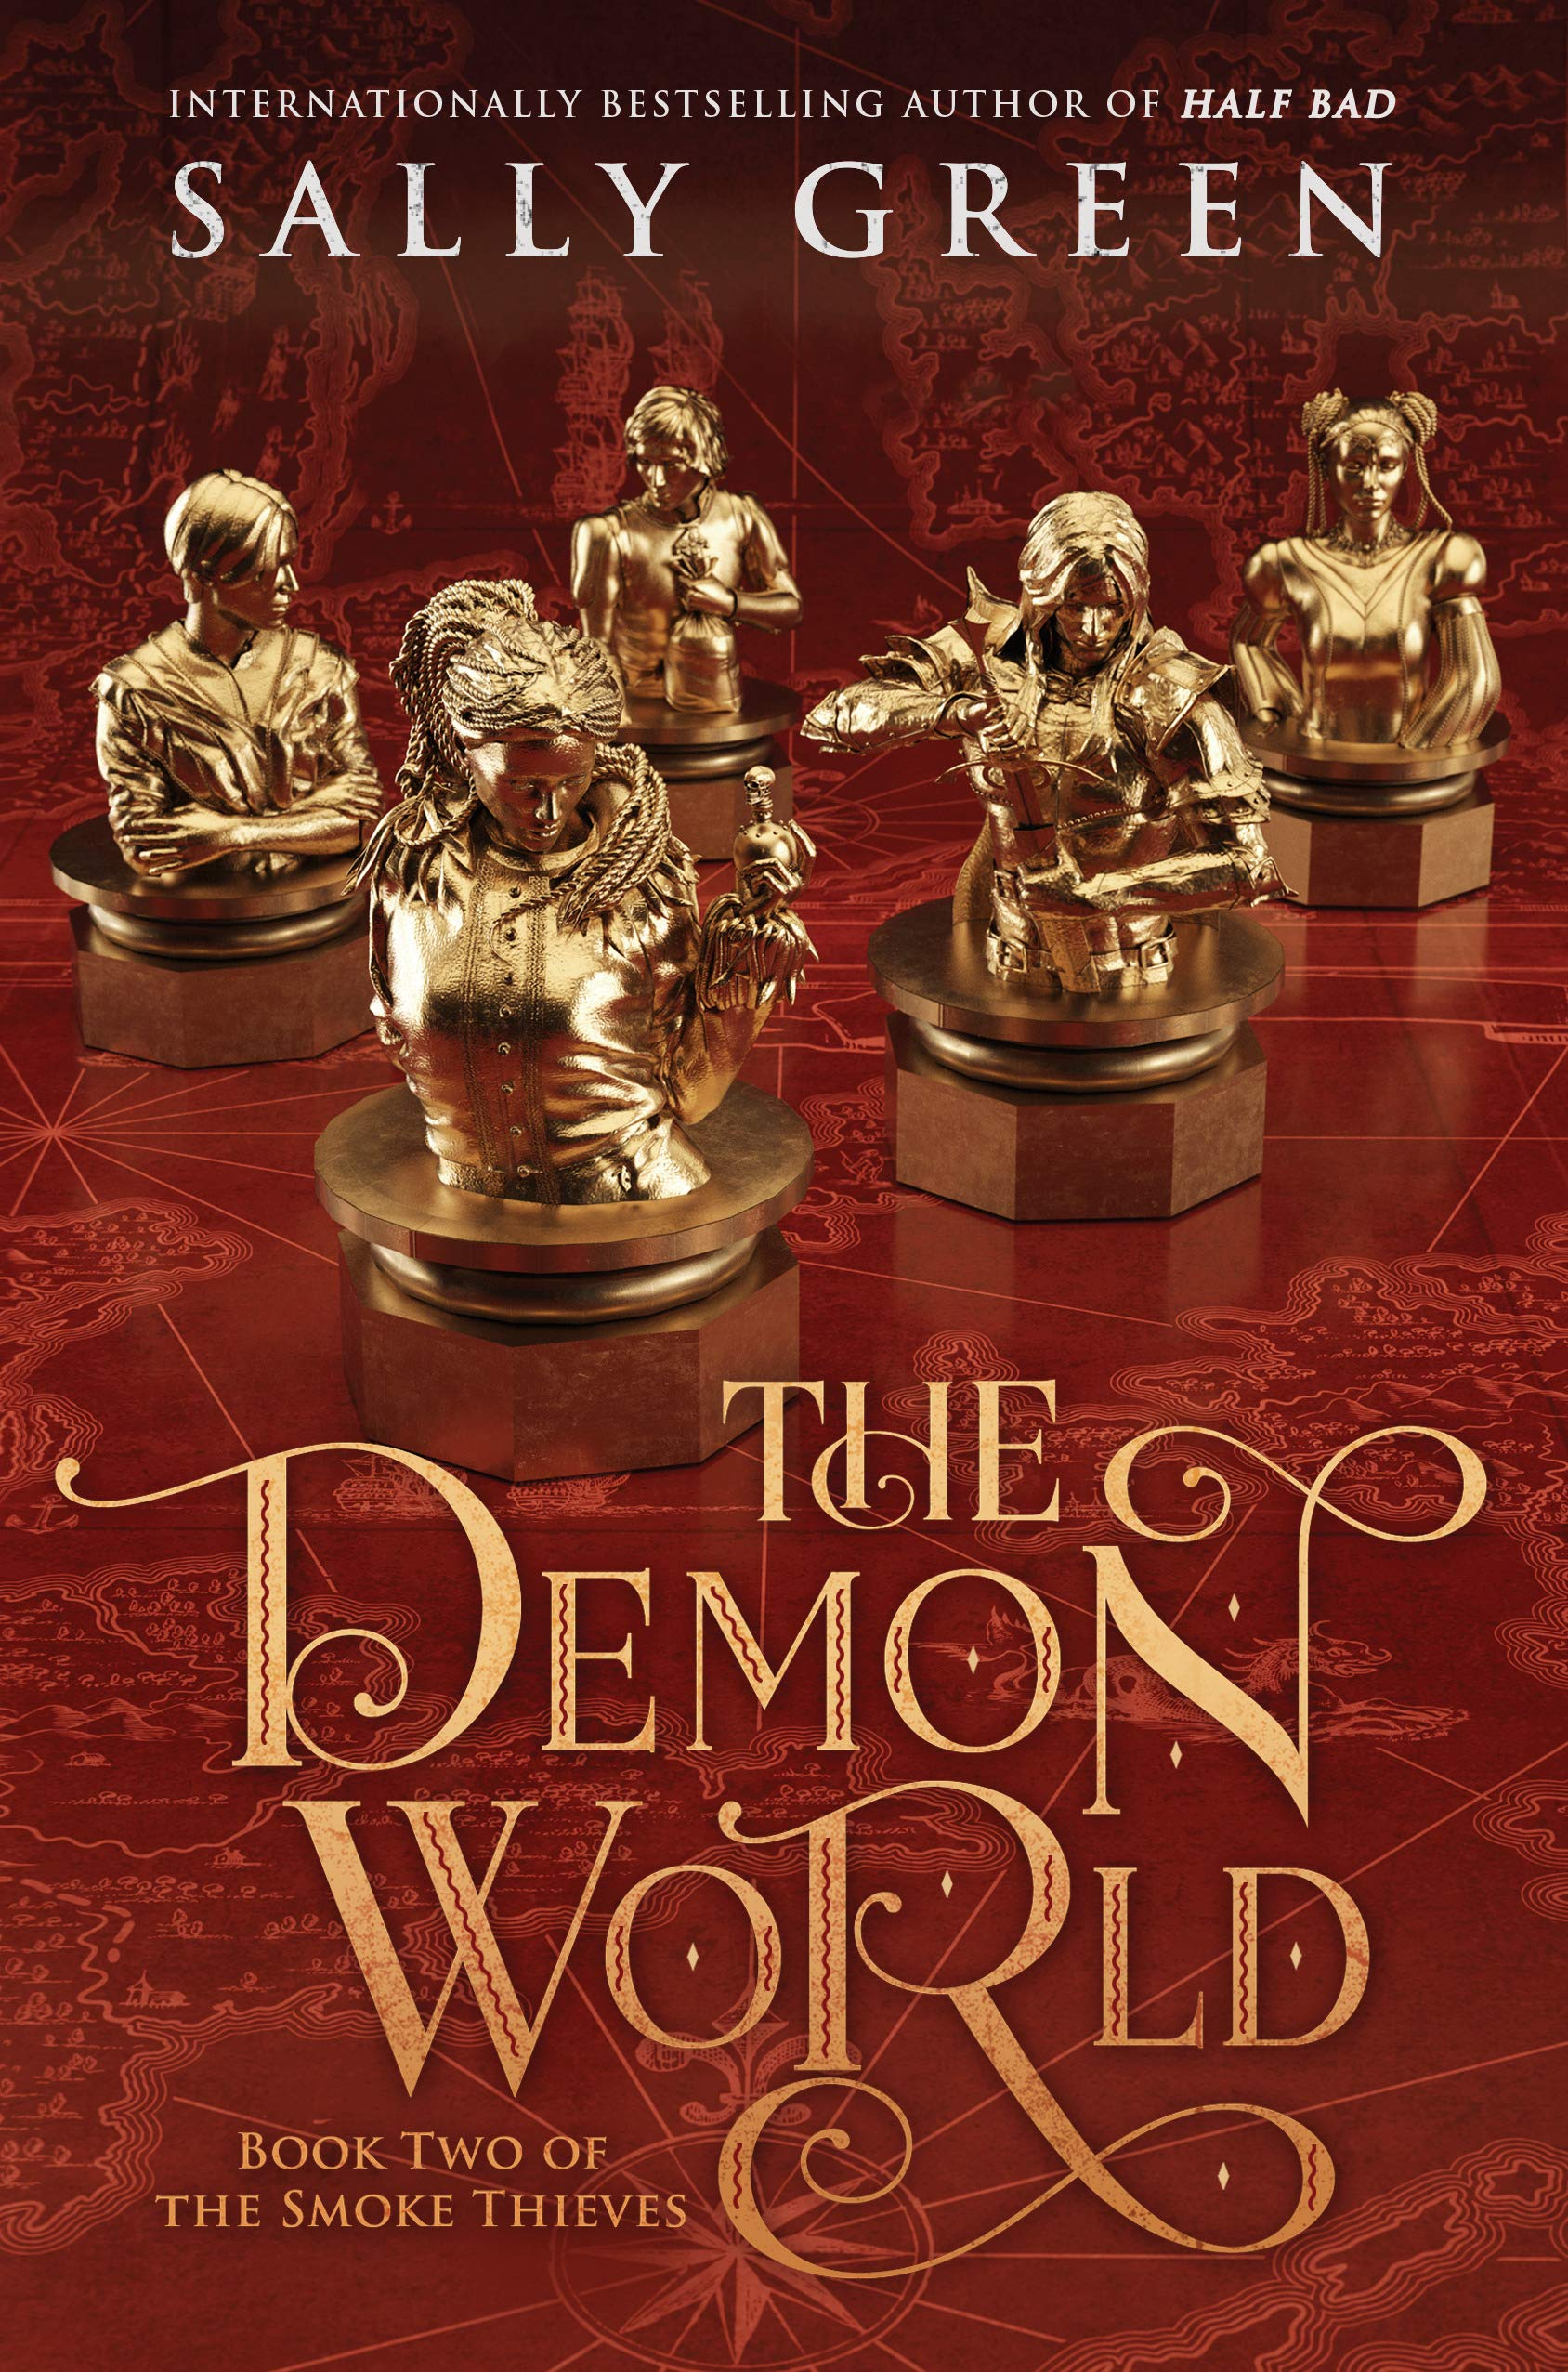 Title:  The Demon World (The Smoke Thieves #2) , Author: Sally Green, Publisher: Viking Books for Young Readers, Publish Date: August 6, 2019; Genres + Tags: YA, Young Adult, Fantasy, Romance, YA Fantasy Romance, Royalty, Demons